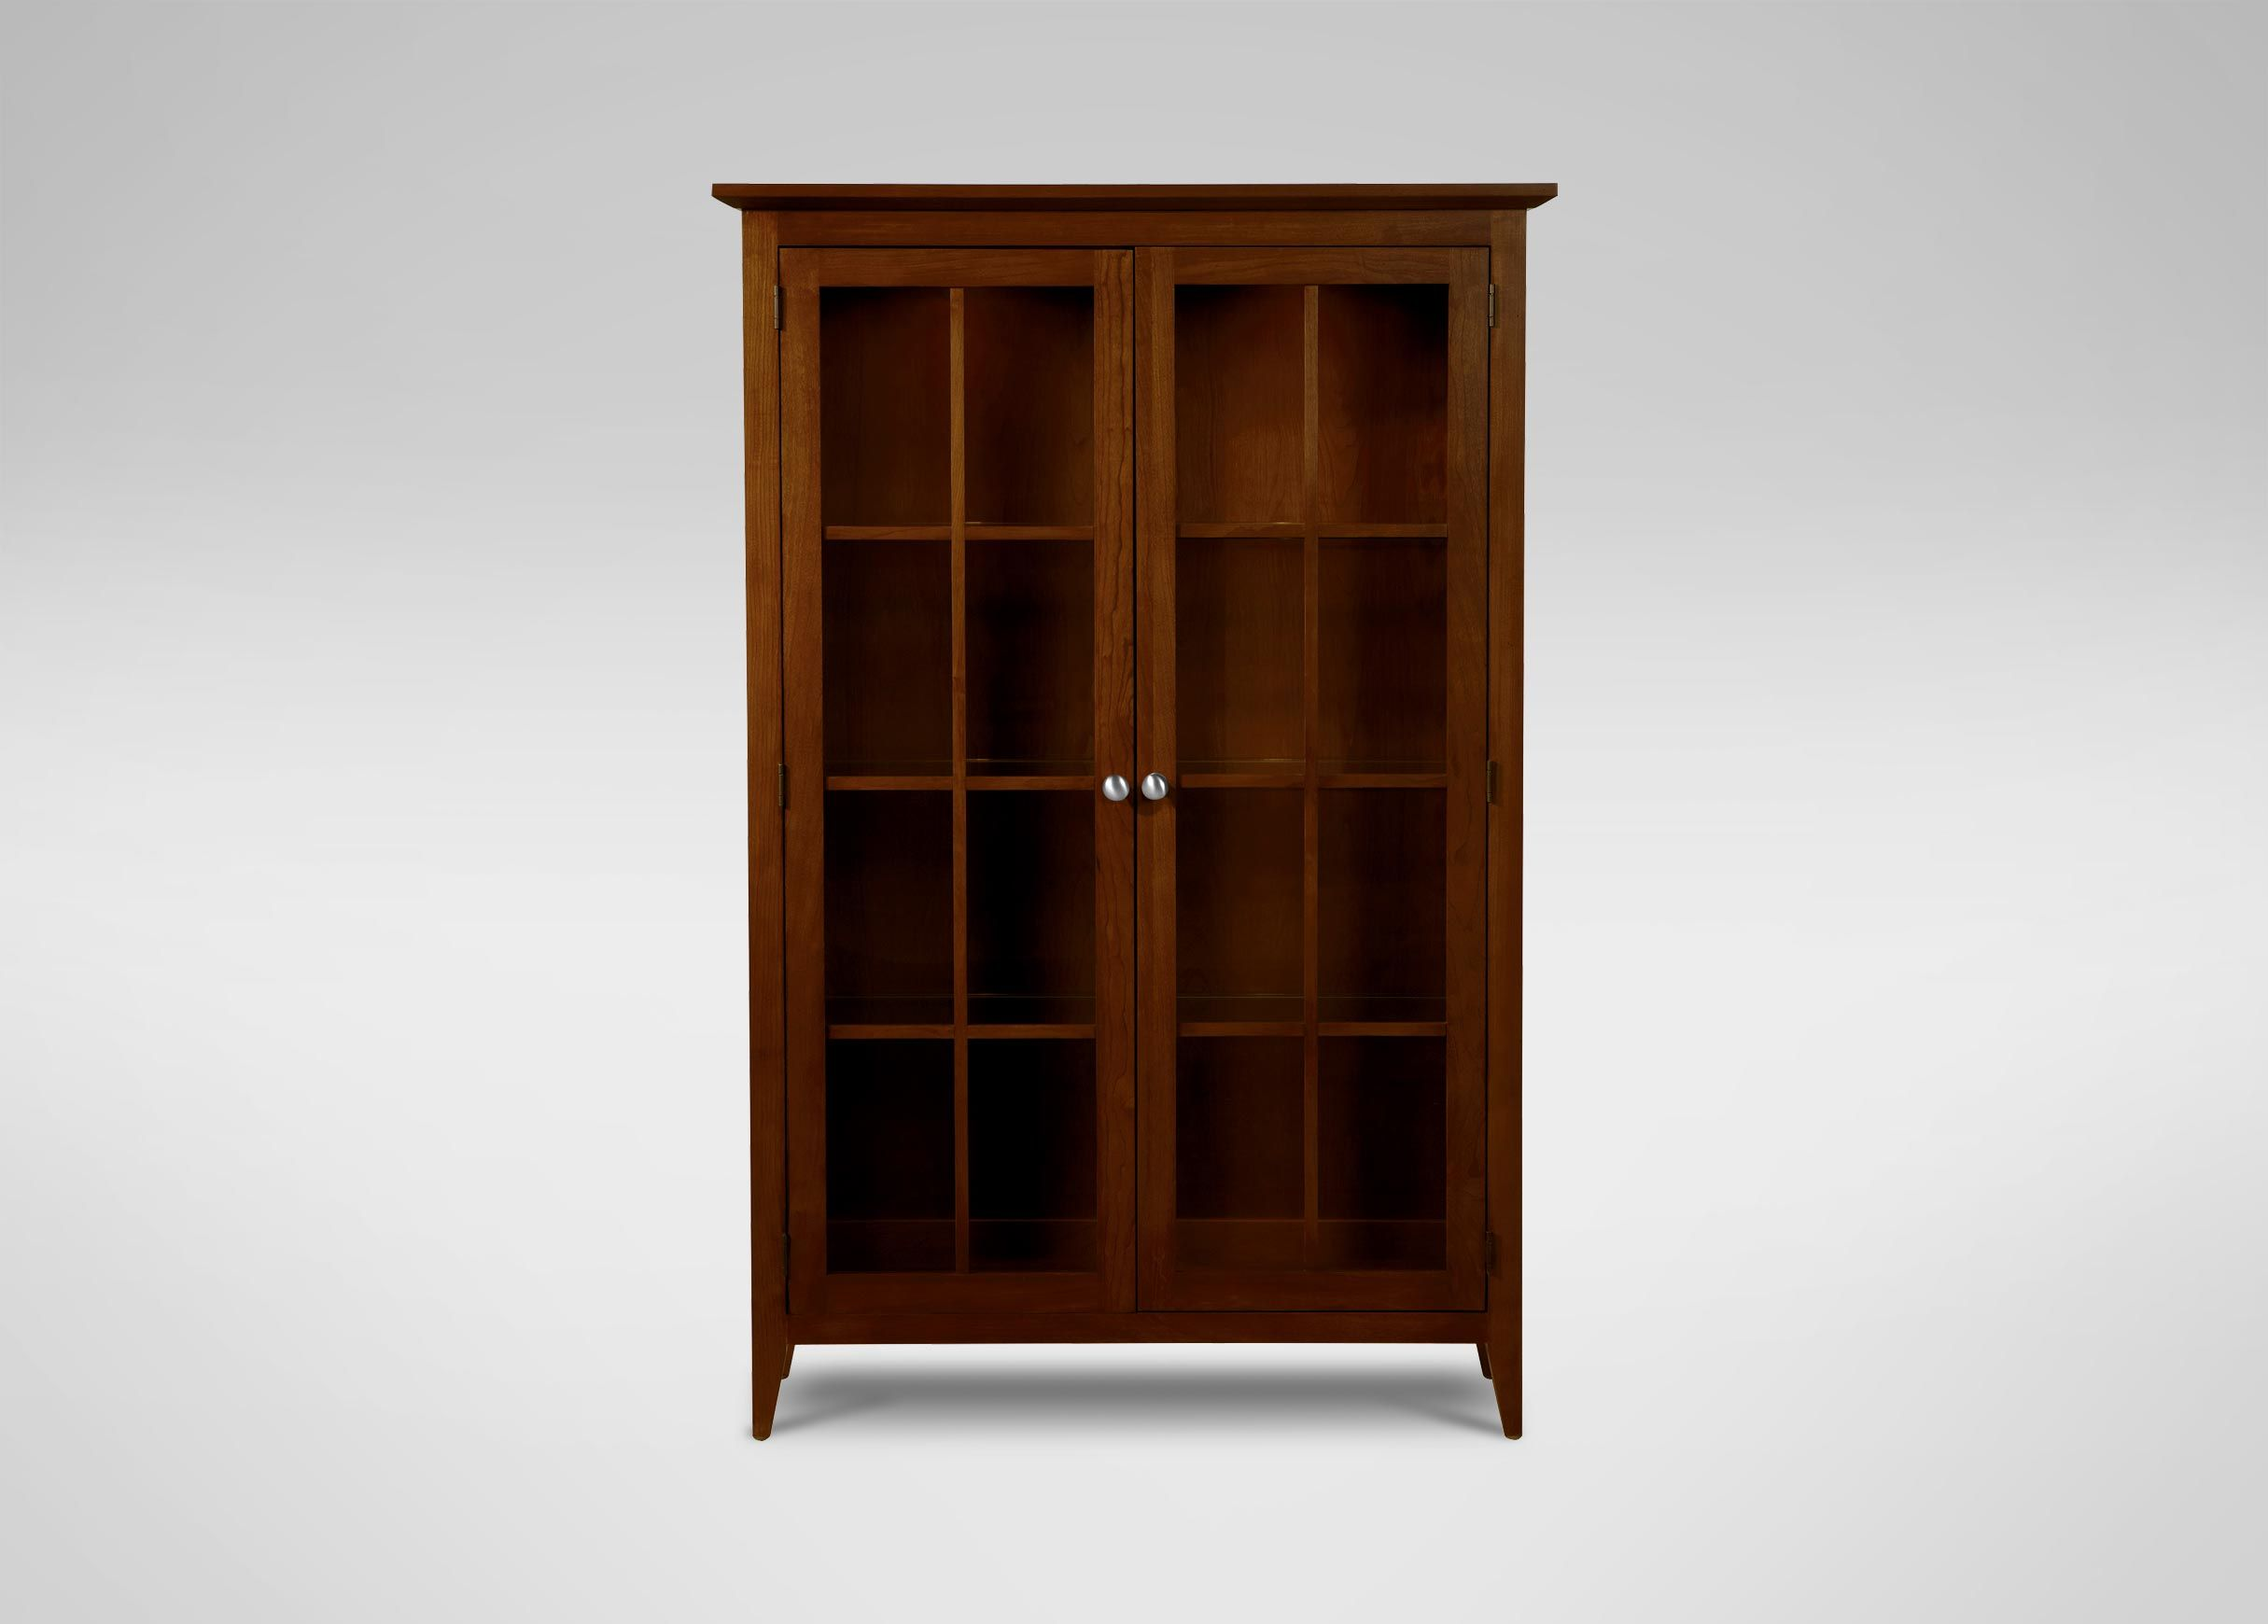 and the by pin shop cabinet archivist display your touch at va room for dc washington maryland lighting furniture virginia northern living with belfort livings hooker fairfax cabinets